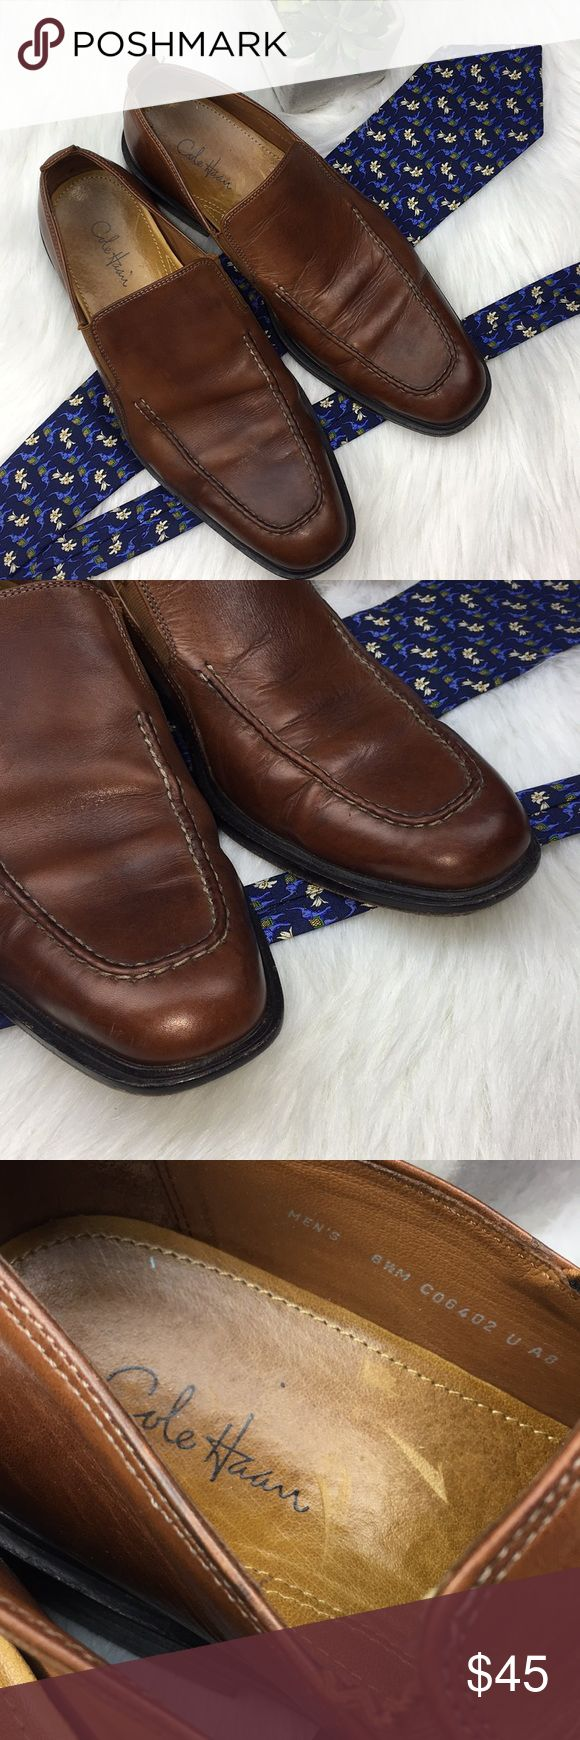 Men's Sz 8.5m Cole Haan loafers Sz 8.5 M Some wear but still good shoe Cole Haan Shoes Loafers & Slip-Ons